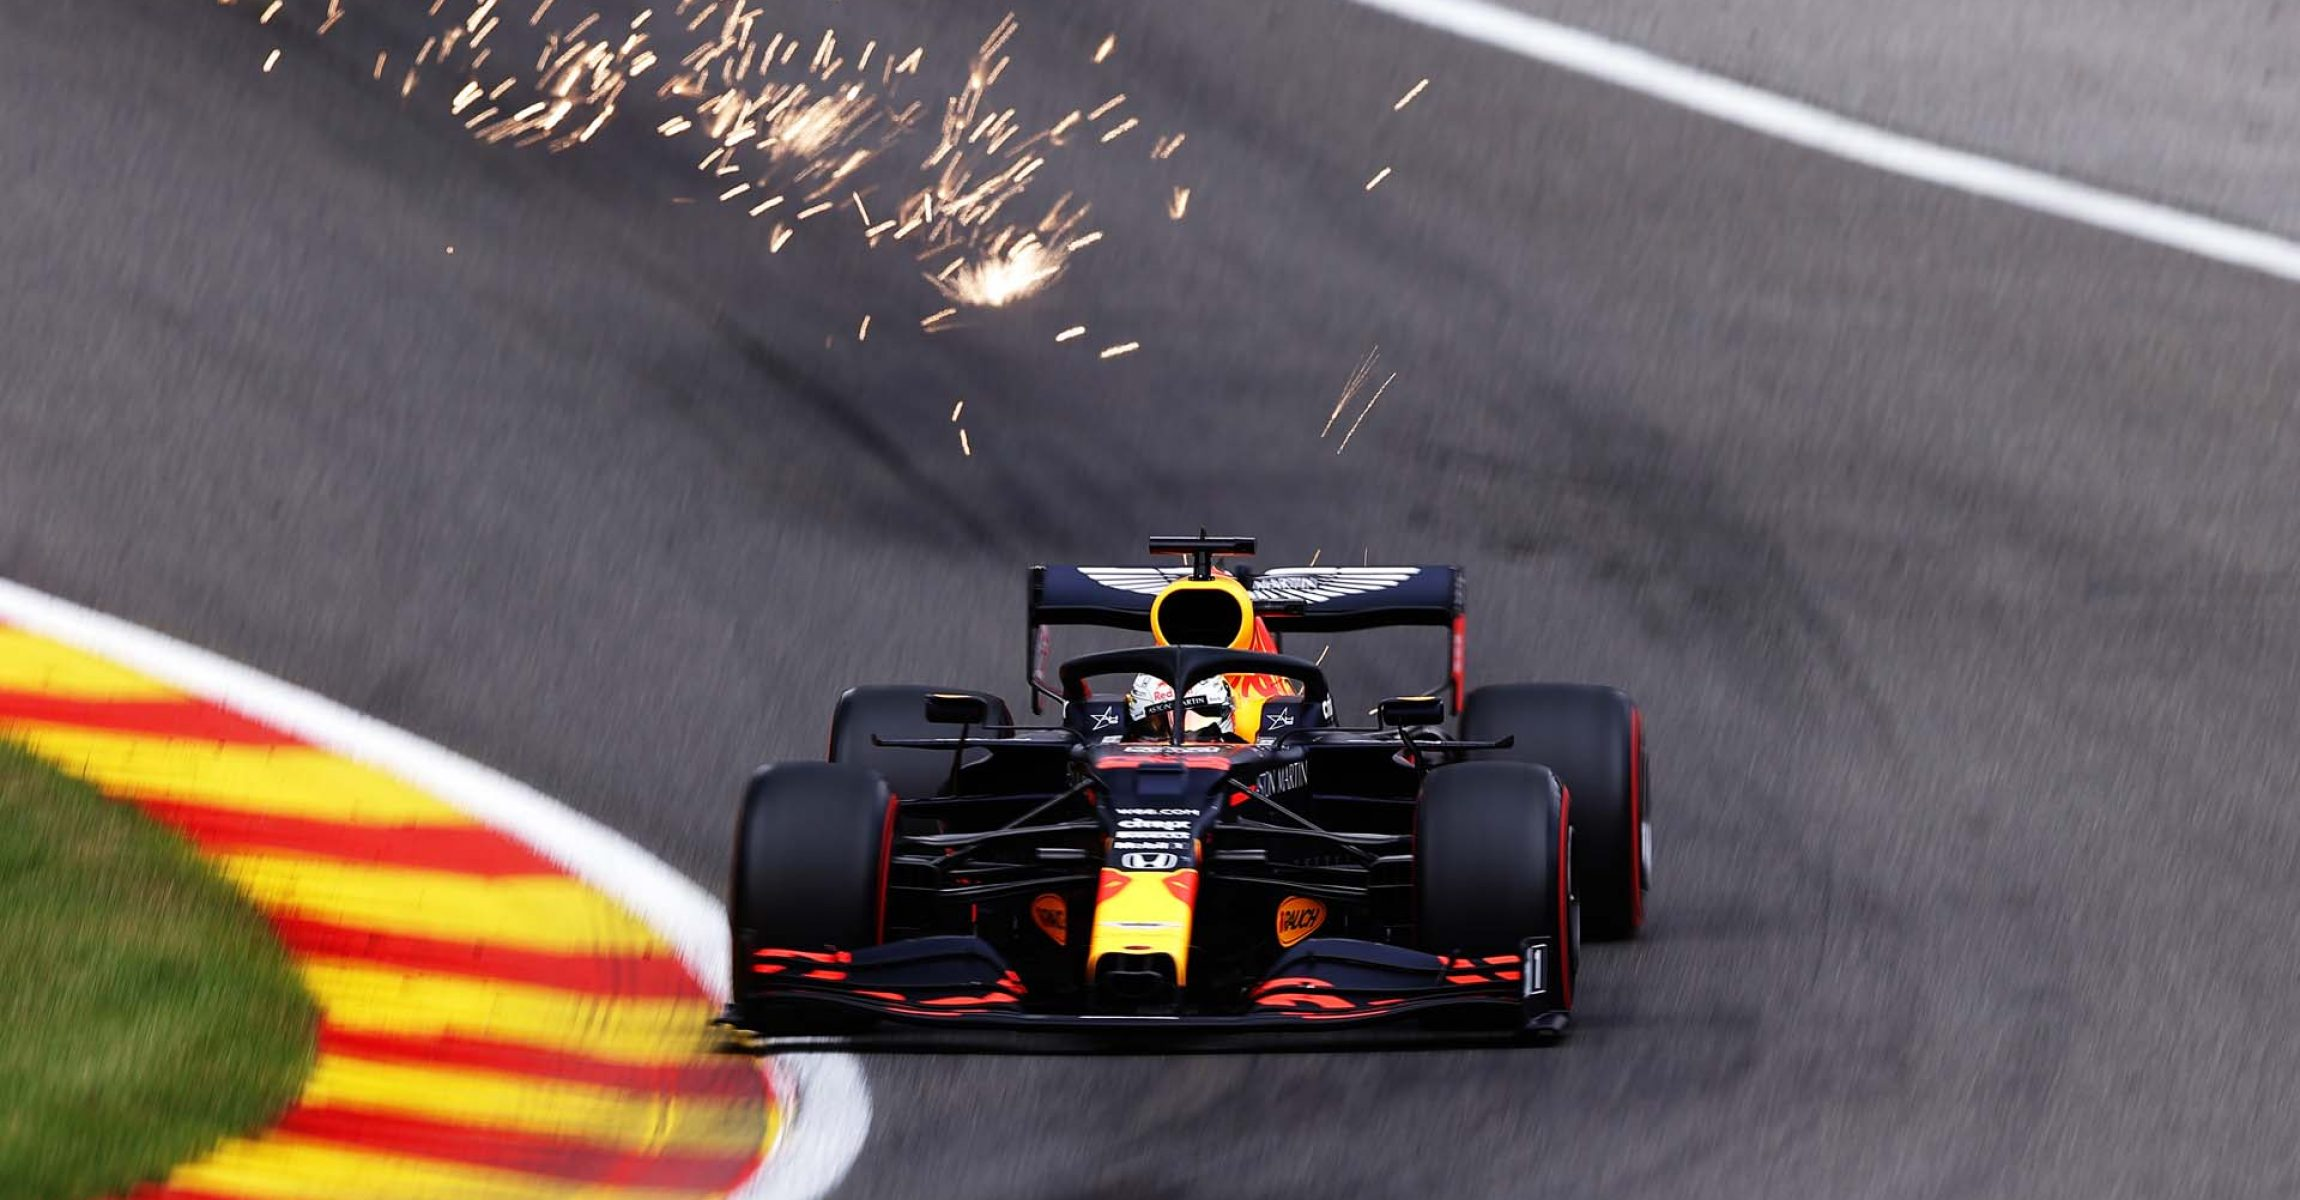 SPA, BELGIUM - AUGUST 29: Max Verstappen of the Netherlands driving the (33) Aston Martin Red Bull Racing RB16 on track during qualifying for the F1 Grand Prix of Belgium at Circuit de Spa-Francorchamps on August 29, 2020 in Spa, Belgium. (Photo by Lars Baron/Getty Images)